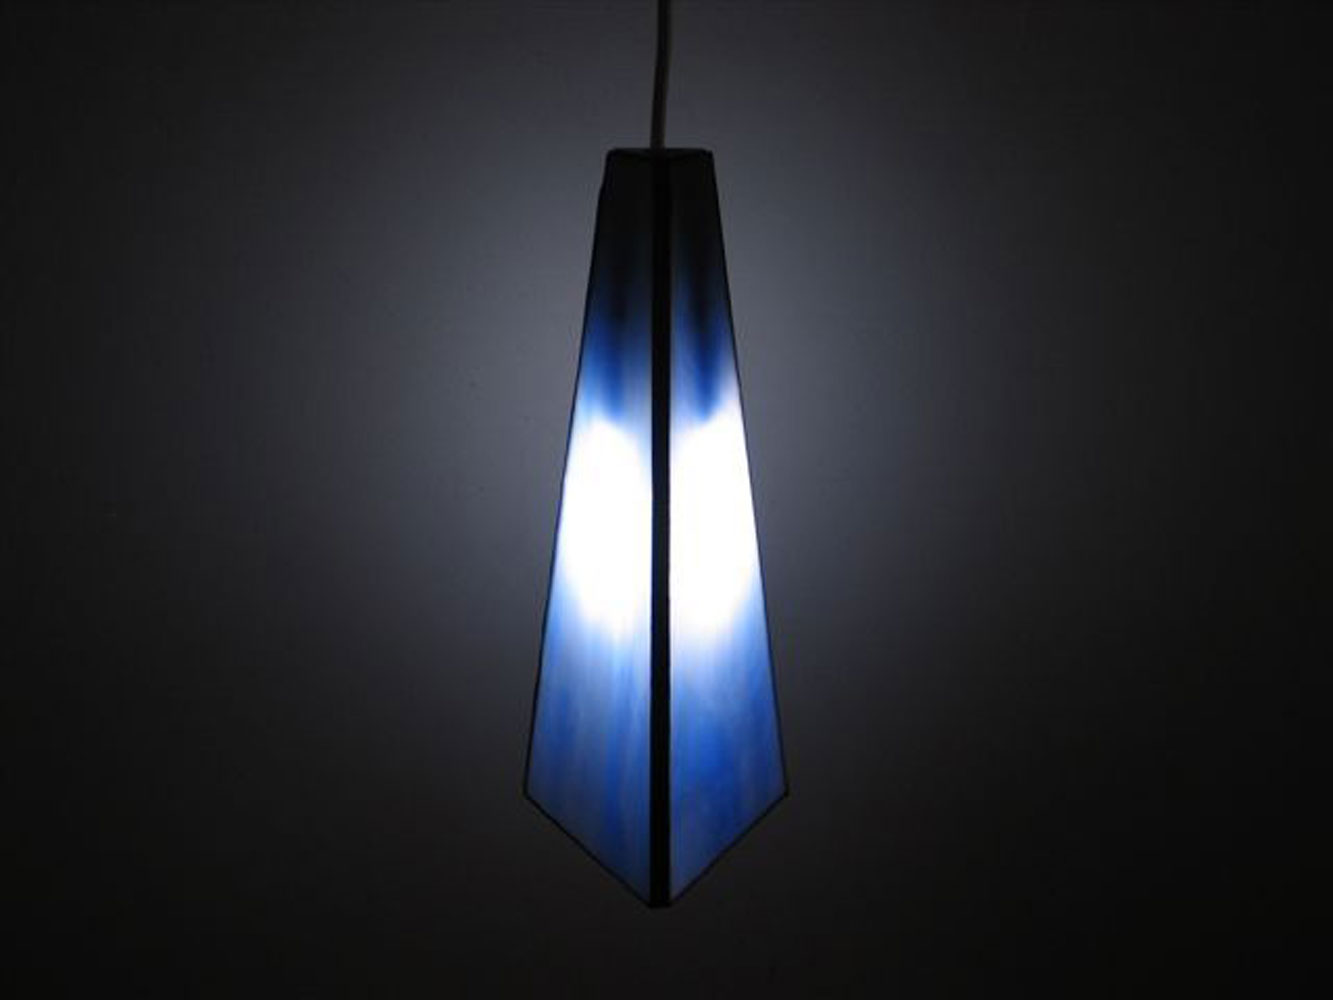 light fixtures- Vitrage pyramid light fixture